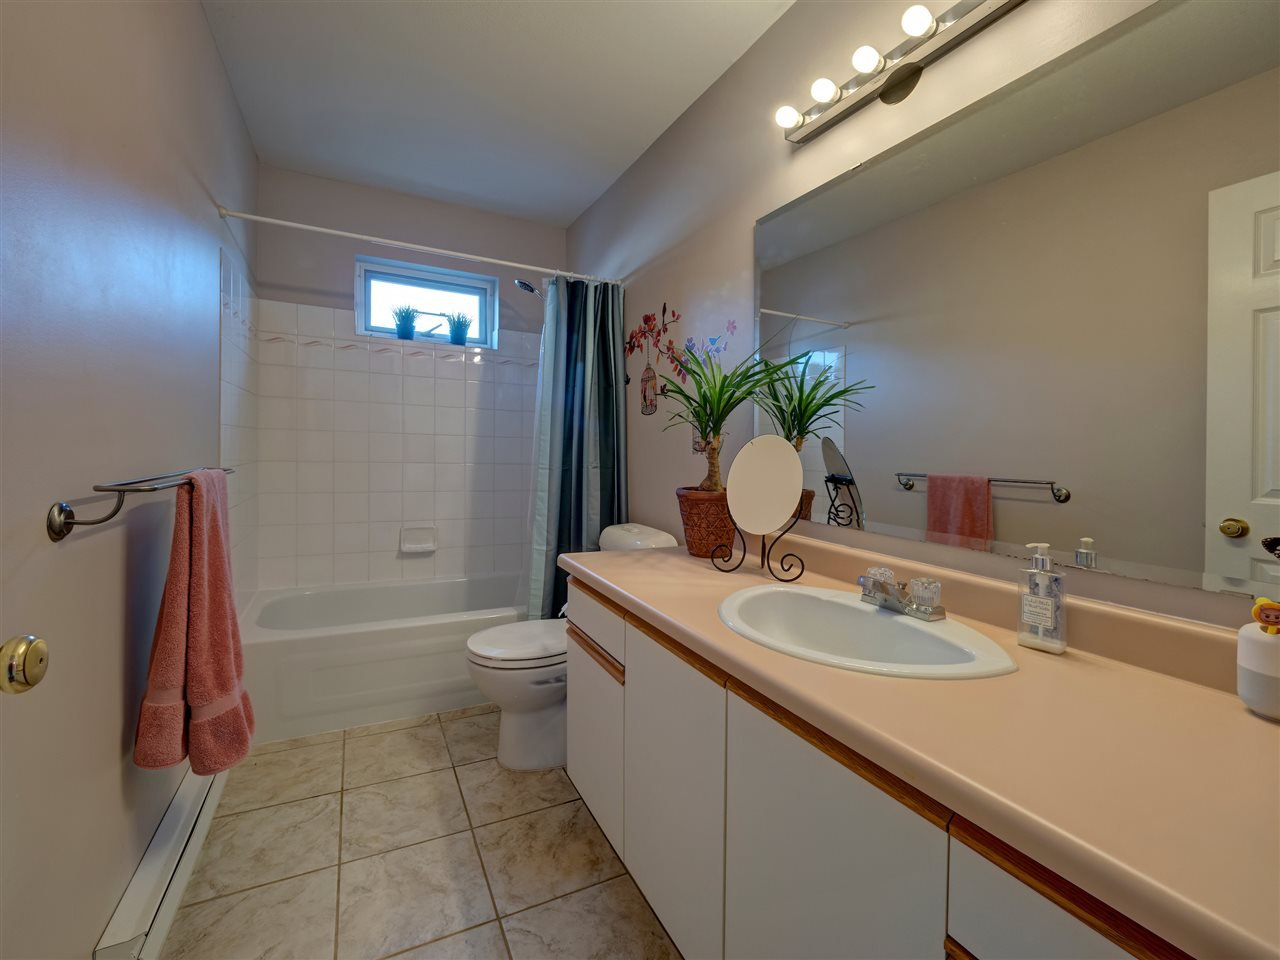 Photo 11: Photos: 19 5761 WHARF Avenue in Sechelt: Sechelt District Townhouse for sale (Sunshine Coast)  : MLS®# R2428590